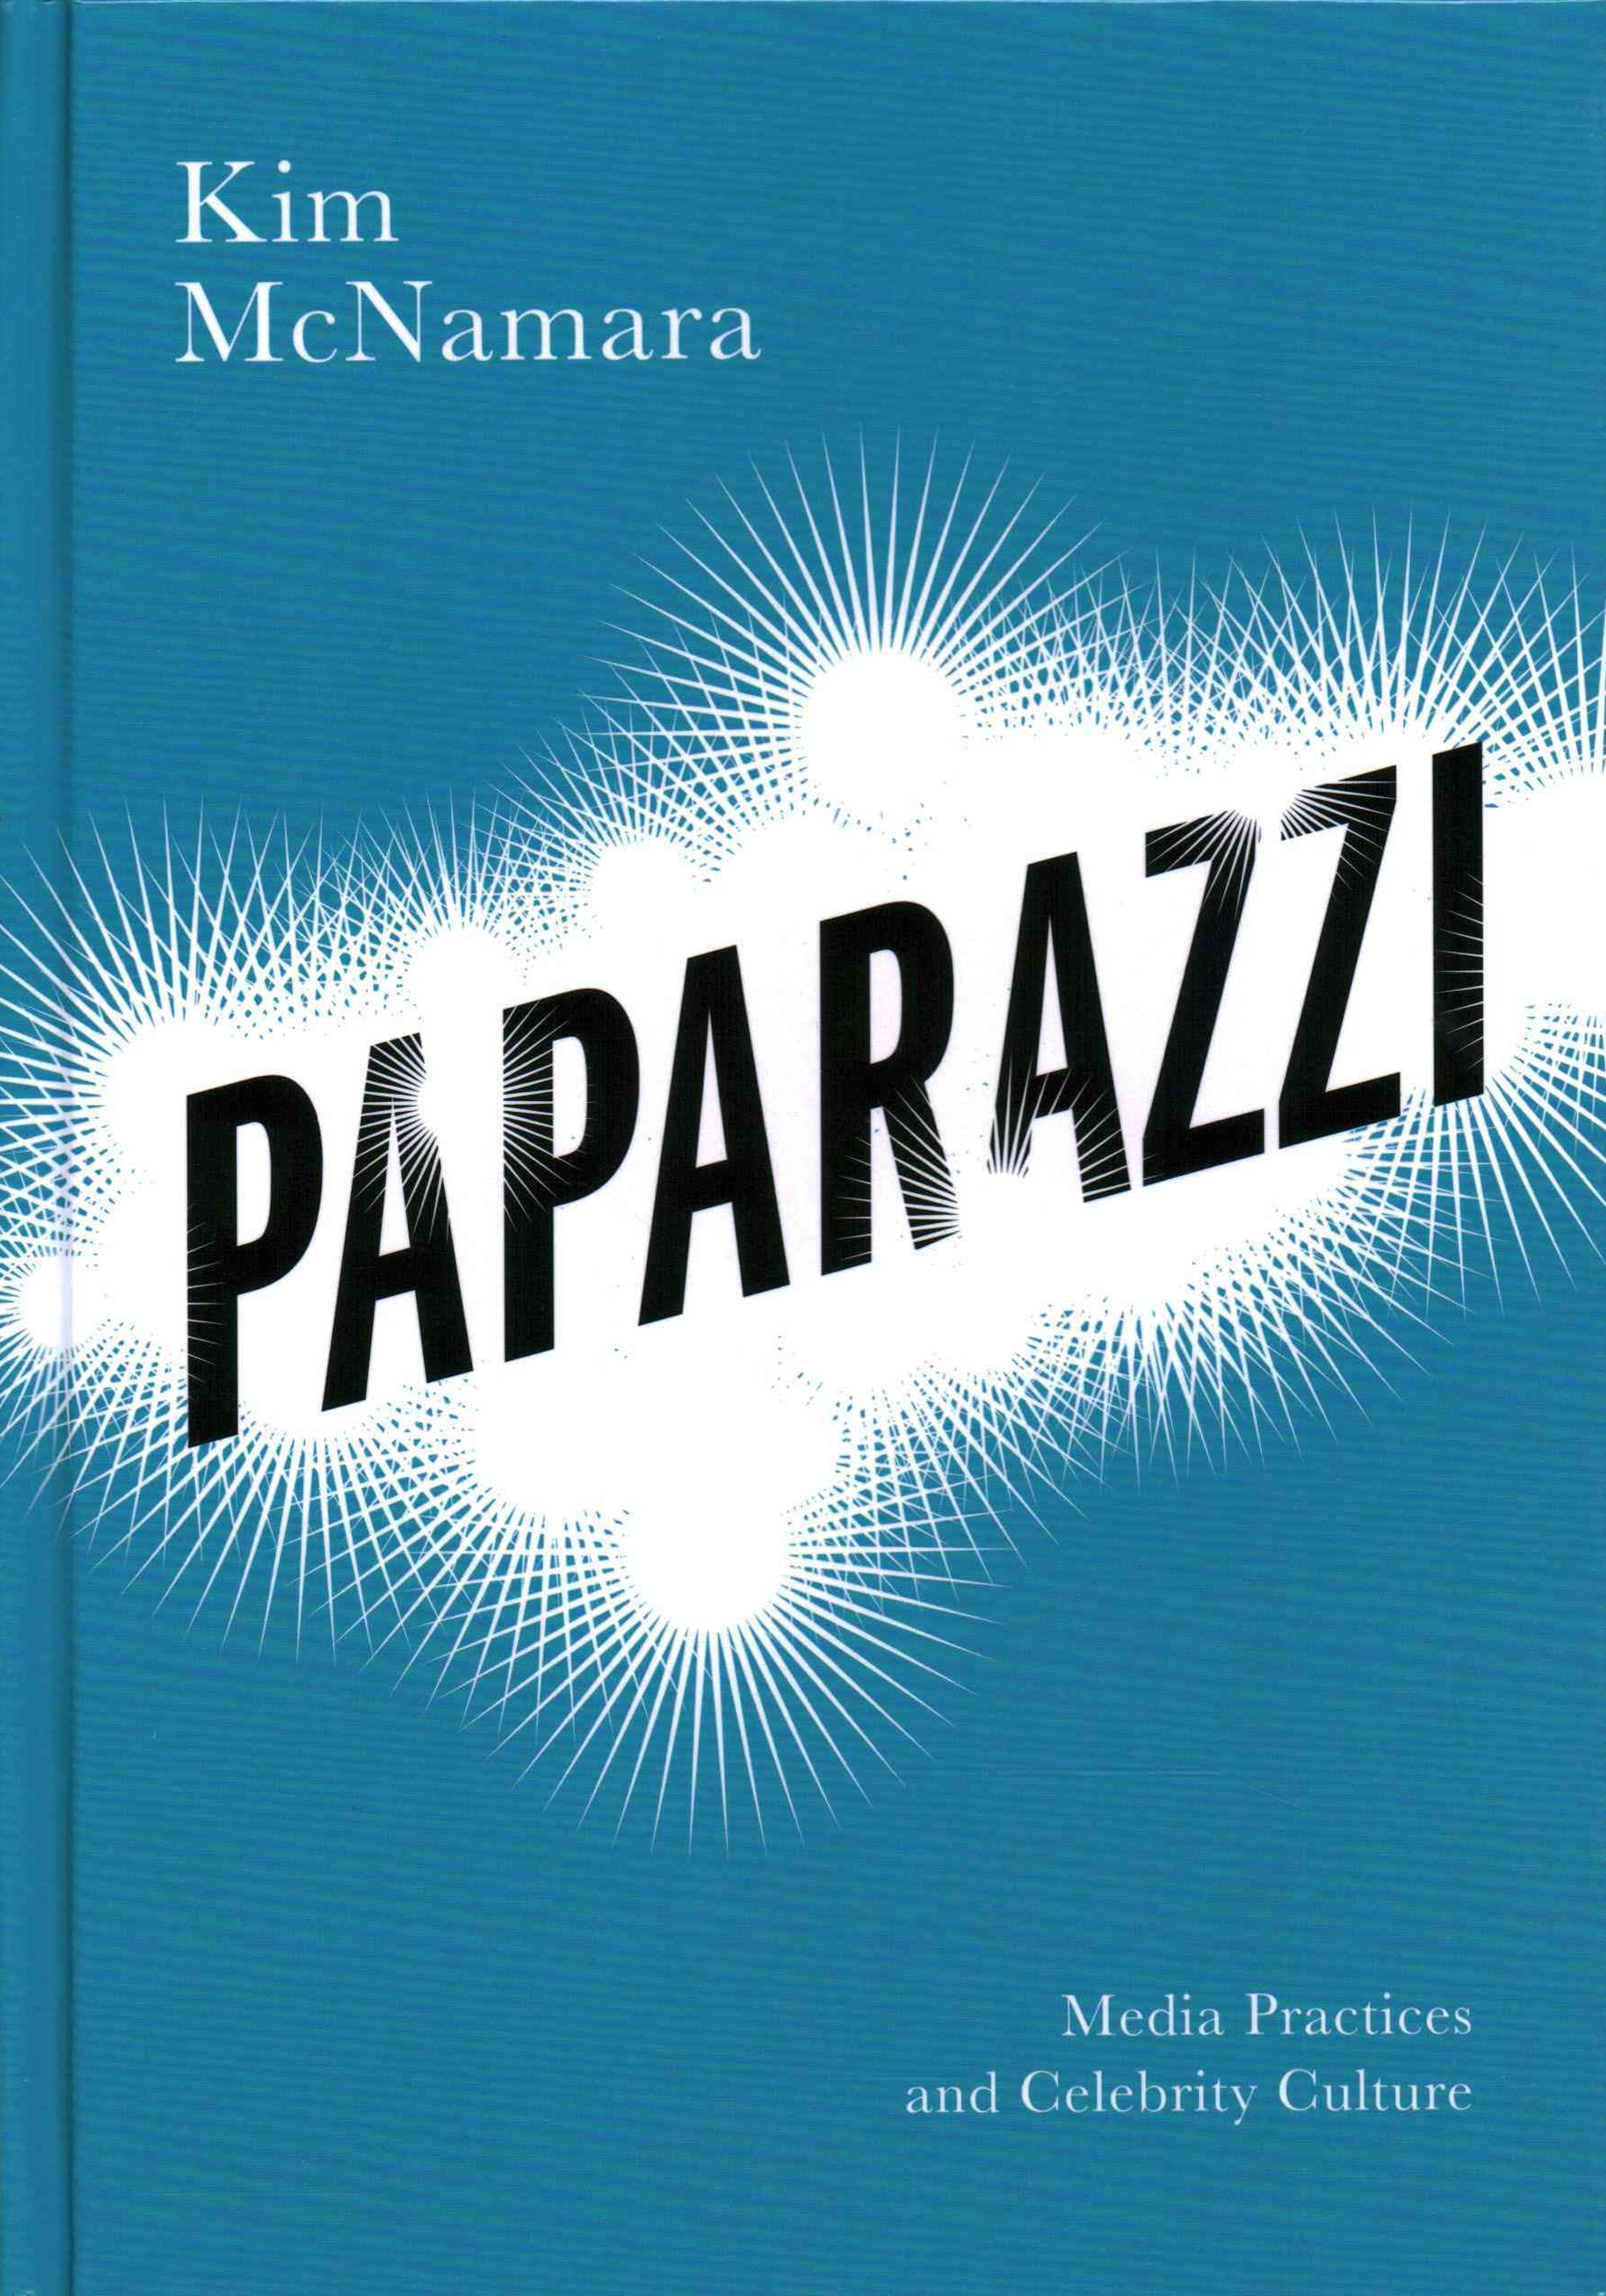 Paparazzi - Media Practices and Celebrity Culture